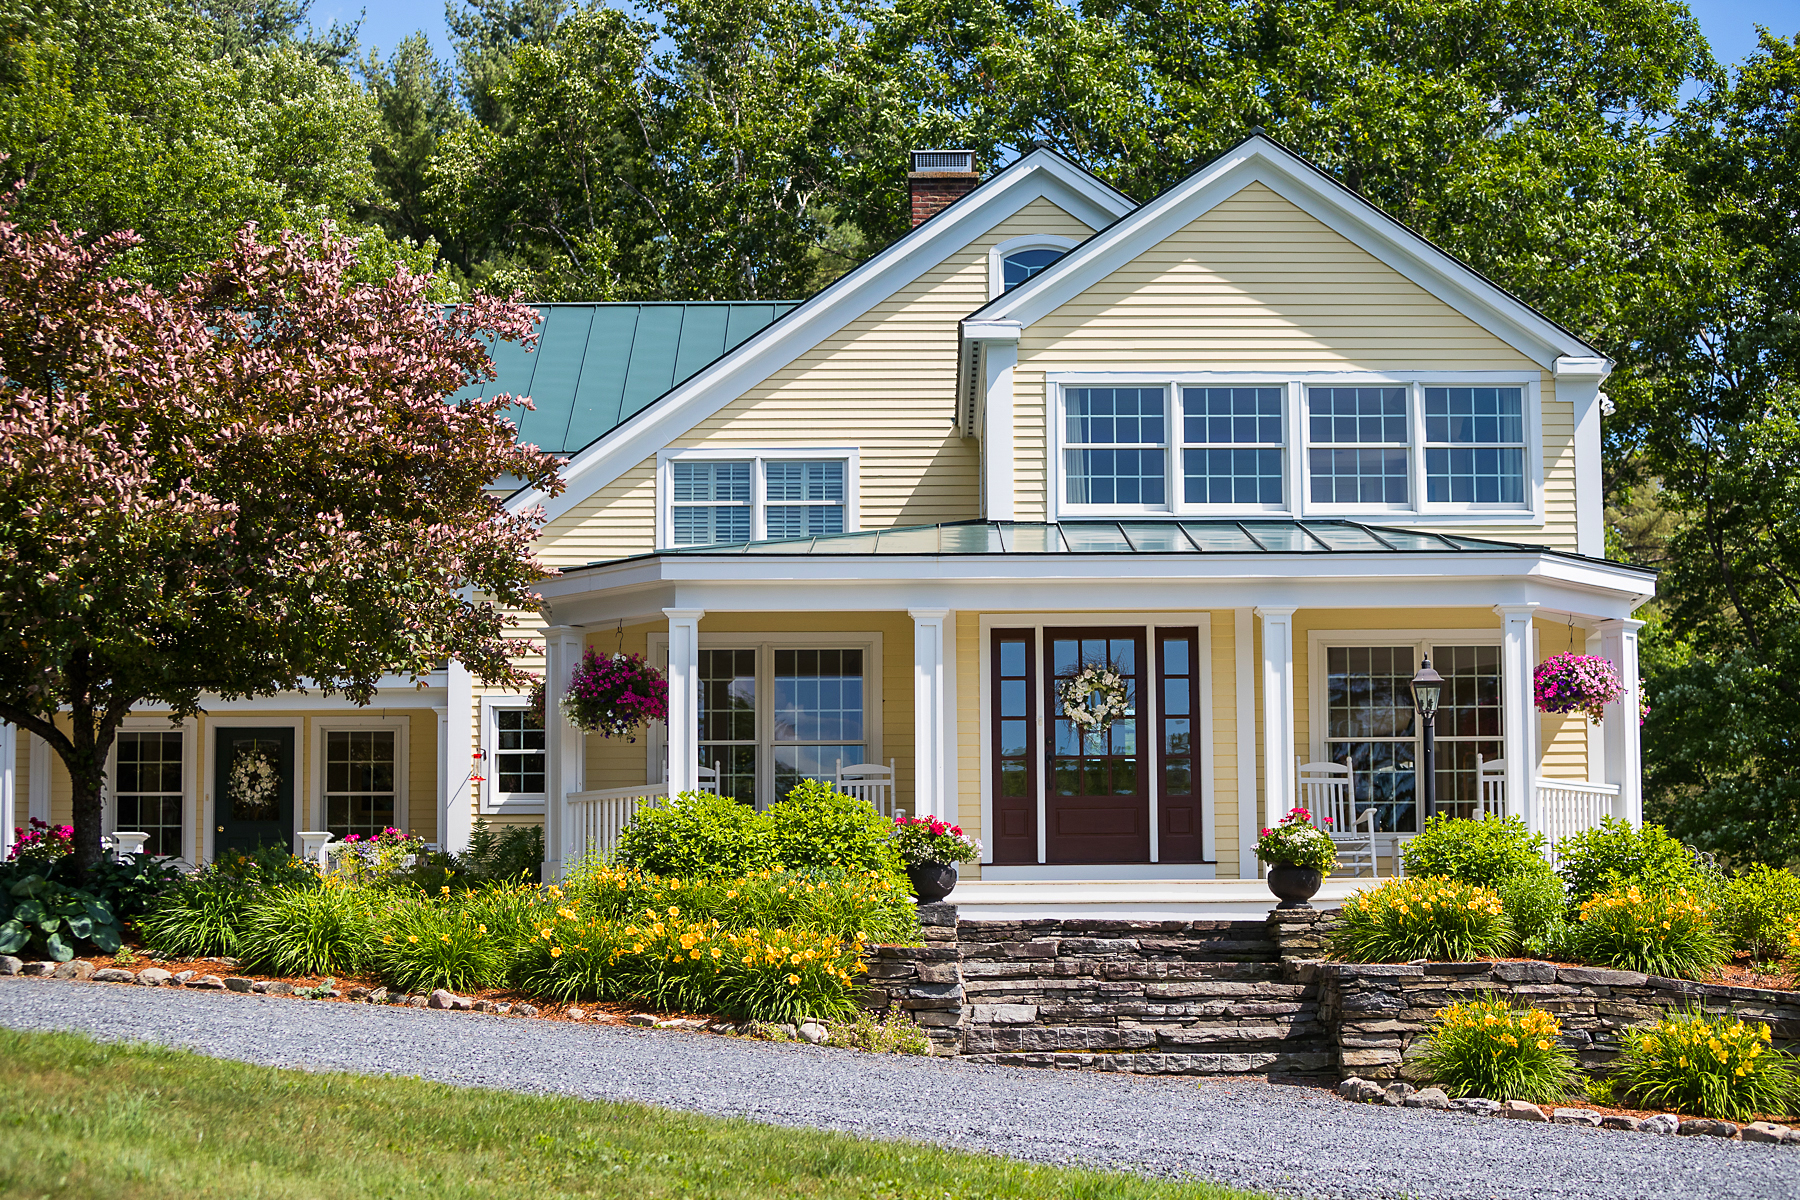 single family homes for Sale at 196 Chester Road, Grafton 196 Chester Rd Grafton, Vermont 05146 United States